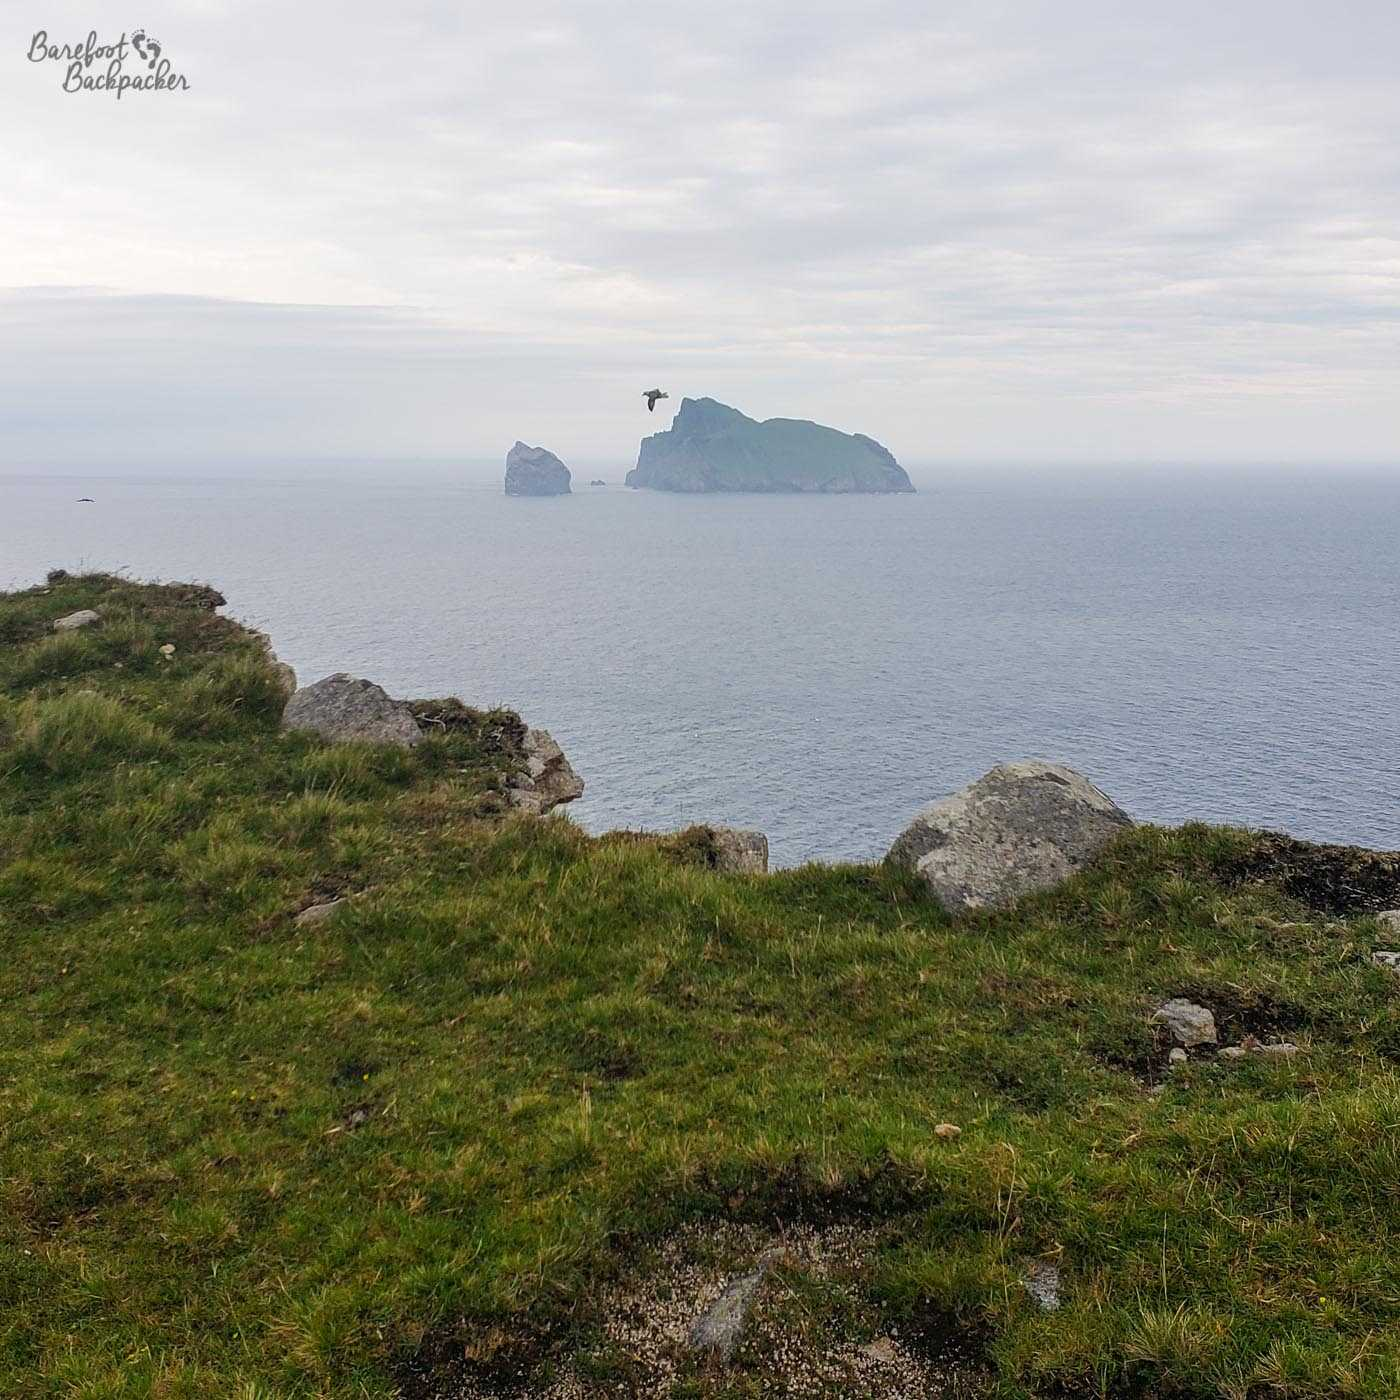 Looking out to one of the rock stacks from a hill on Hirta. There is a bird swooping nearby.